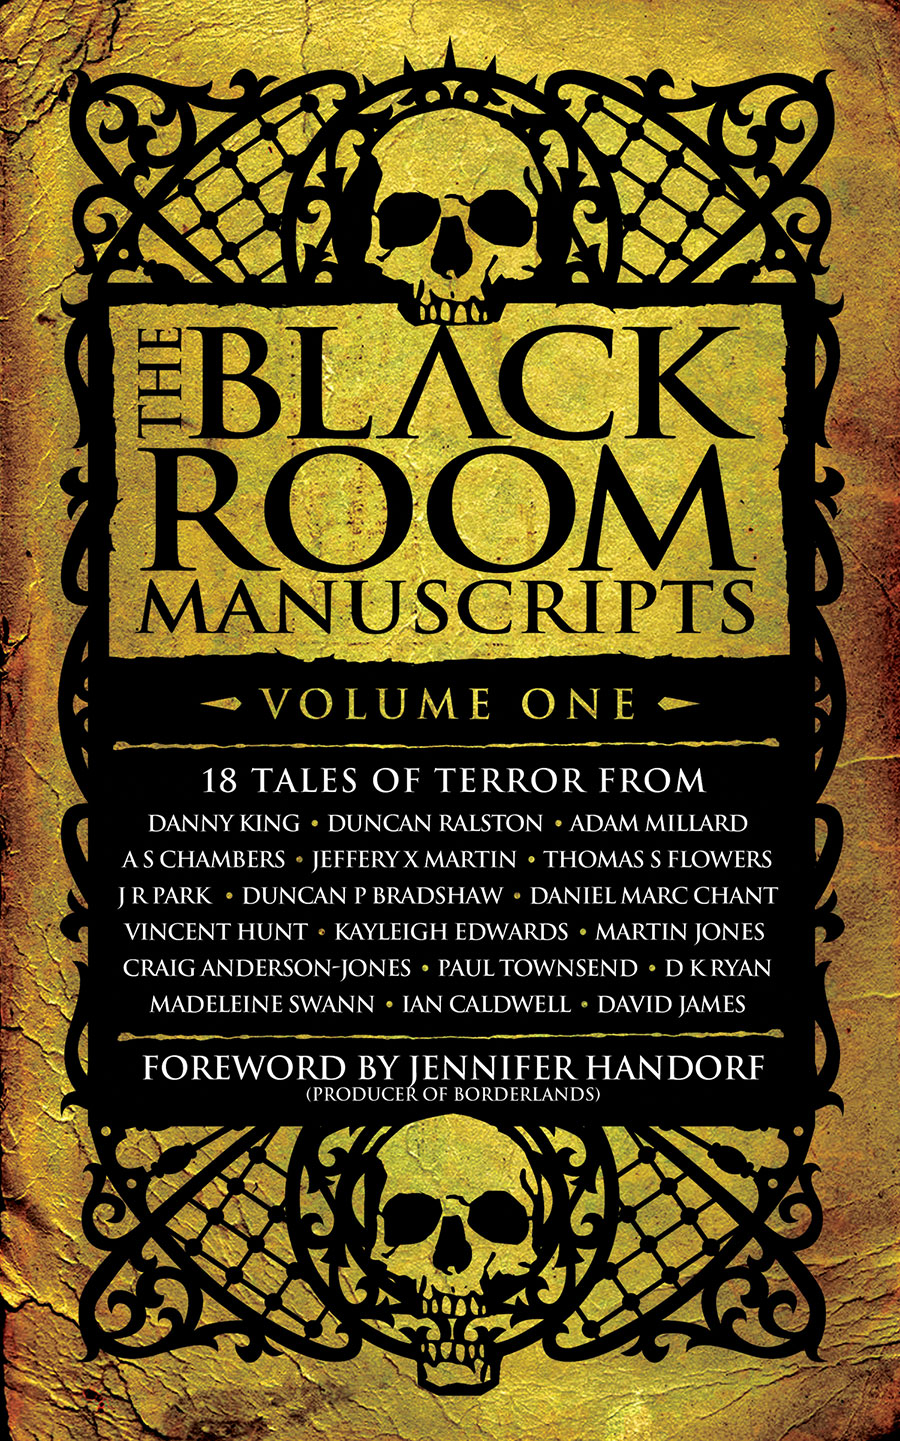 Black Room Manuscripts